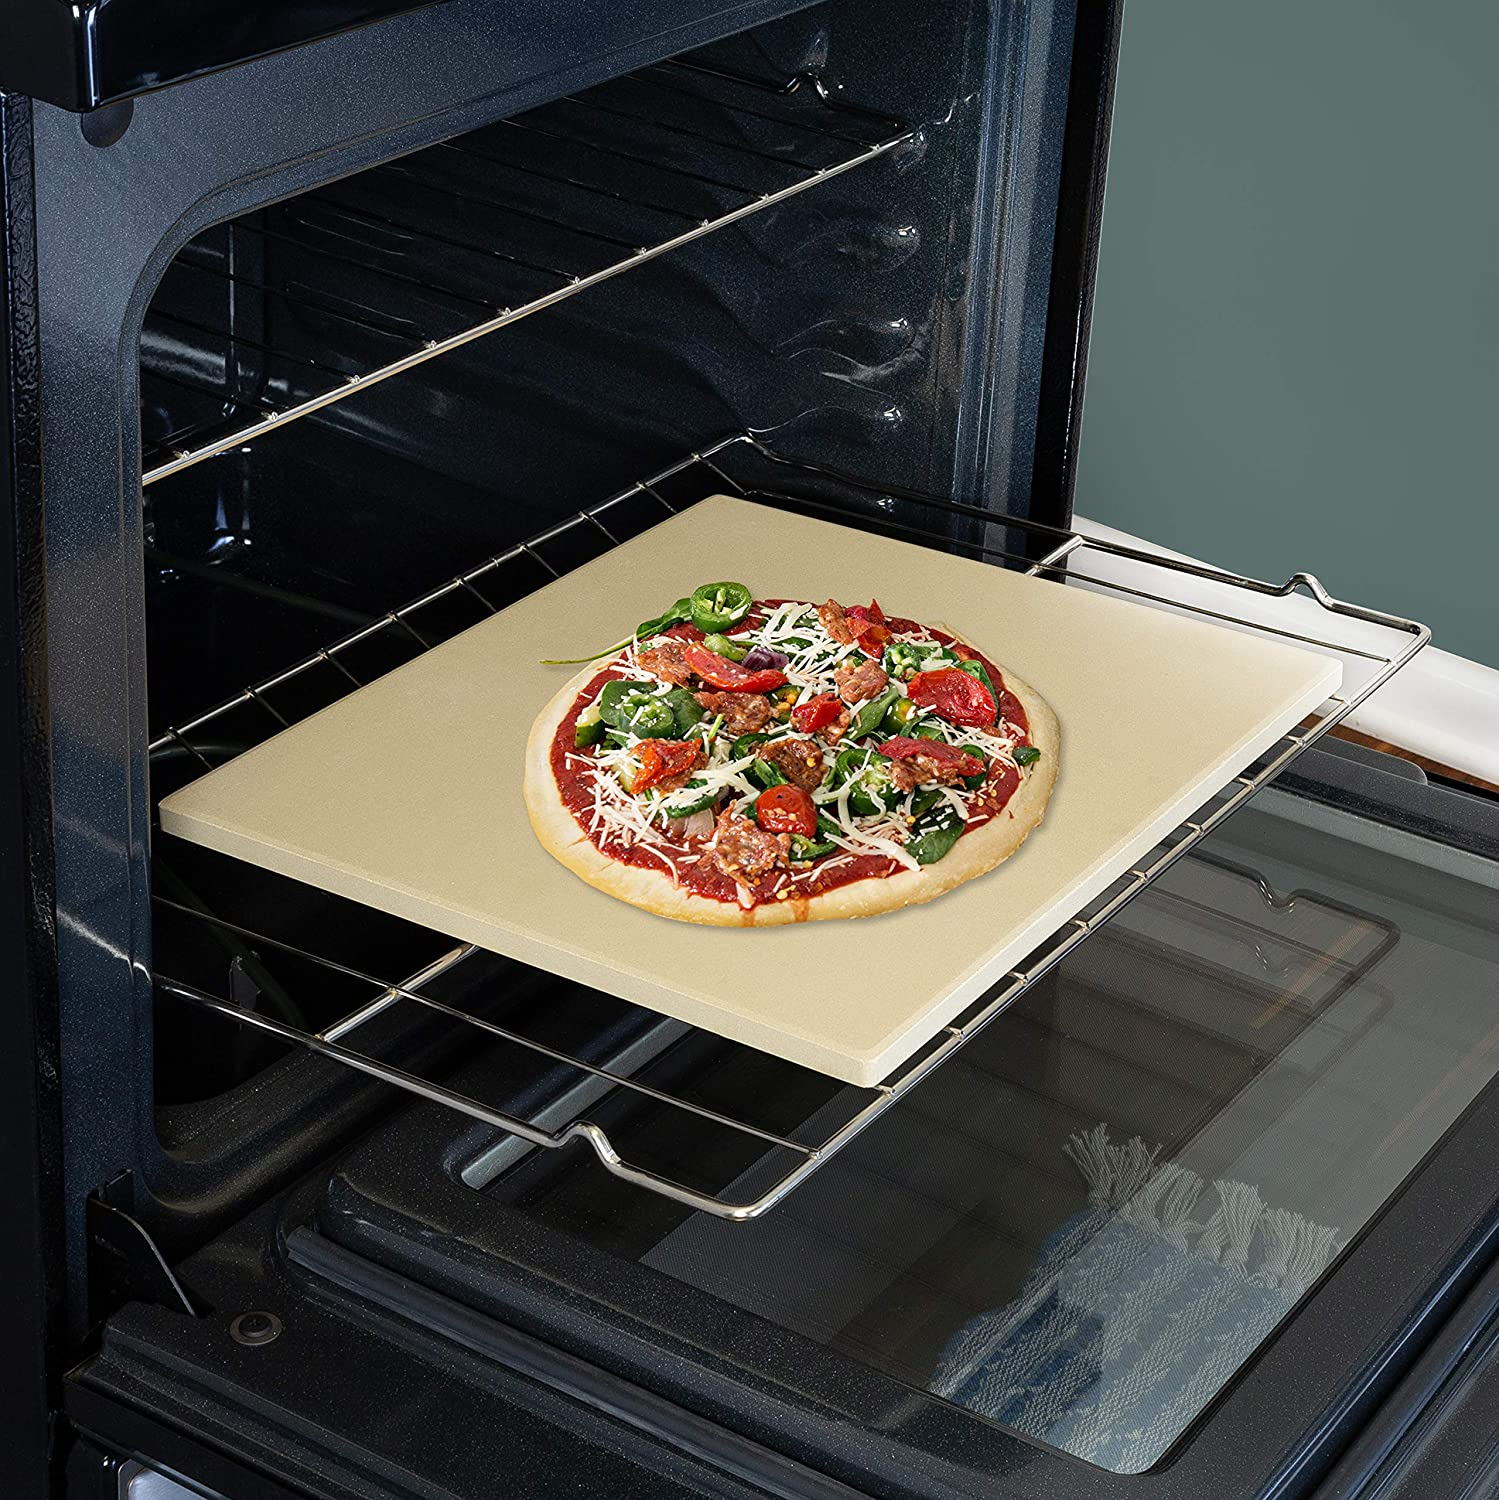 rectangular pizza stone with pizza on it on oven rack